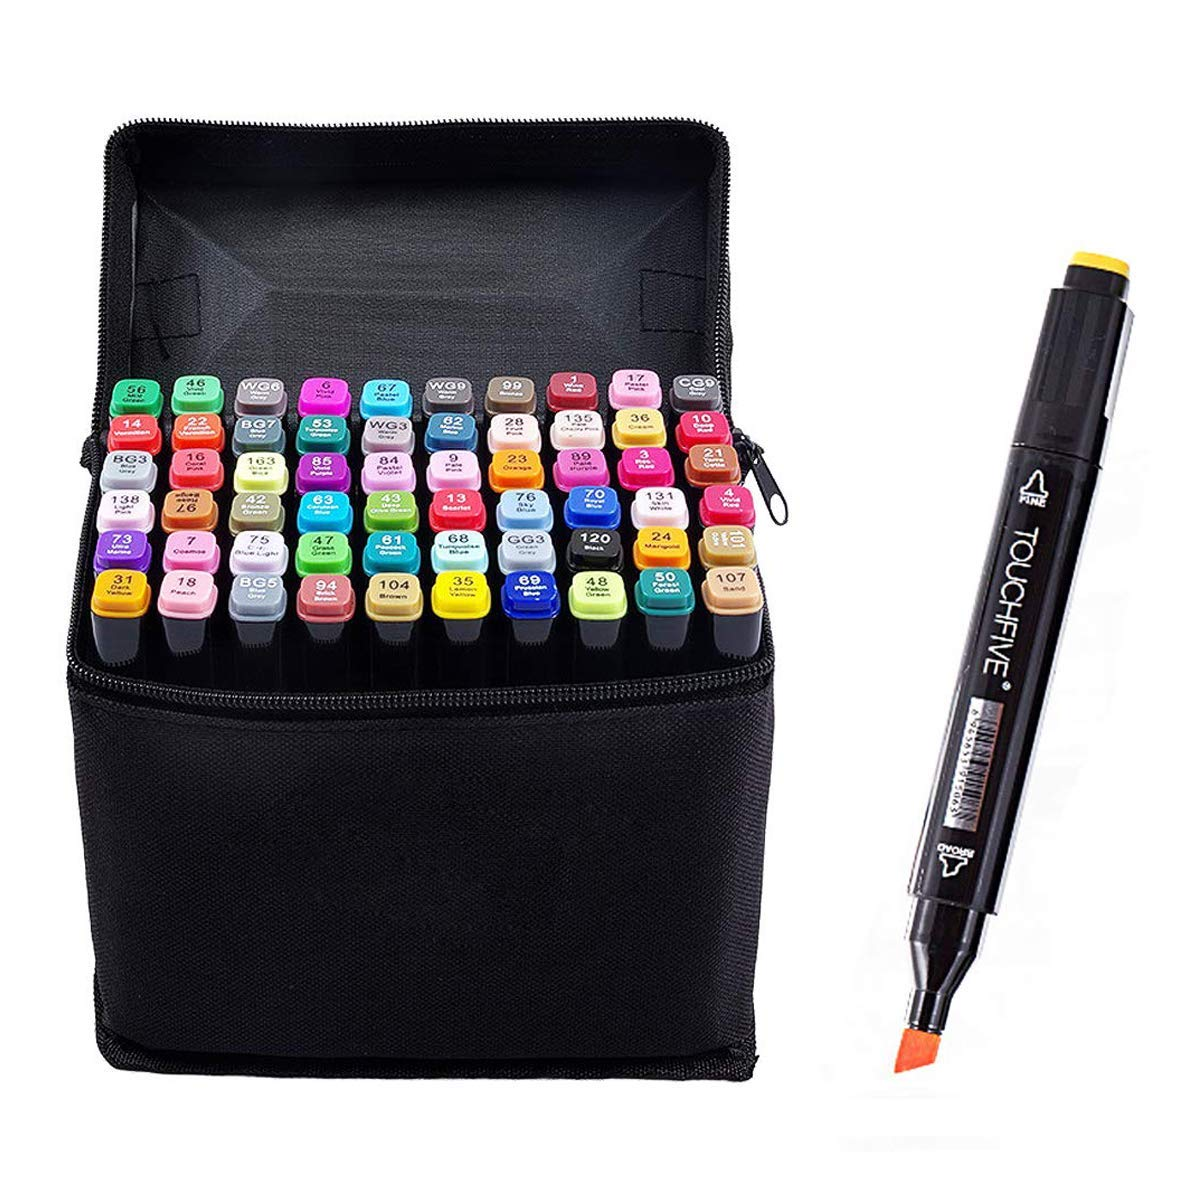 YOULIAN Art Markers Set 60 Colors with Carry Bag,TOUCHFIVE,Dual Tips Coloring Marker Pens for Kid,Manga Marker Pens for Portrait Illustration Drawing Coloring Alcohol Based Art Markers,Black